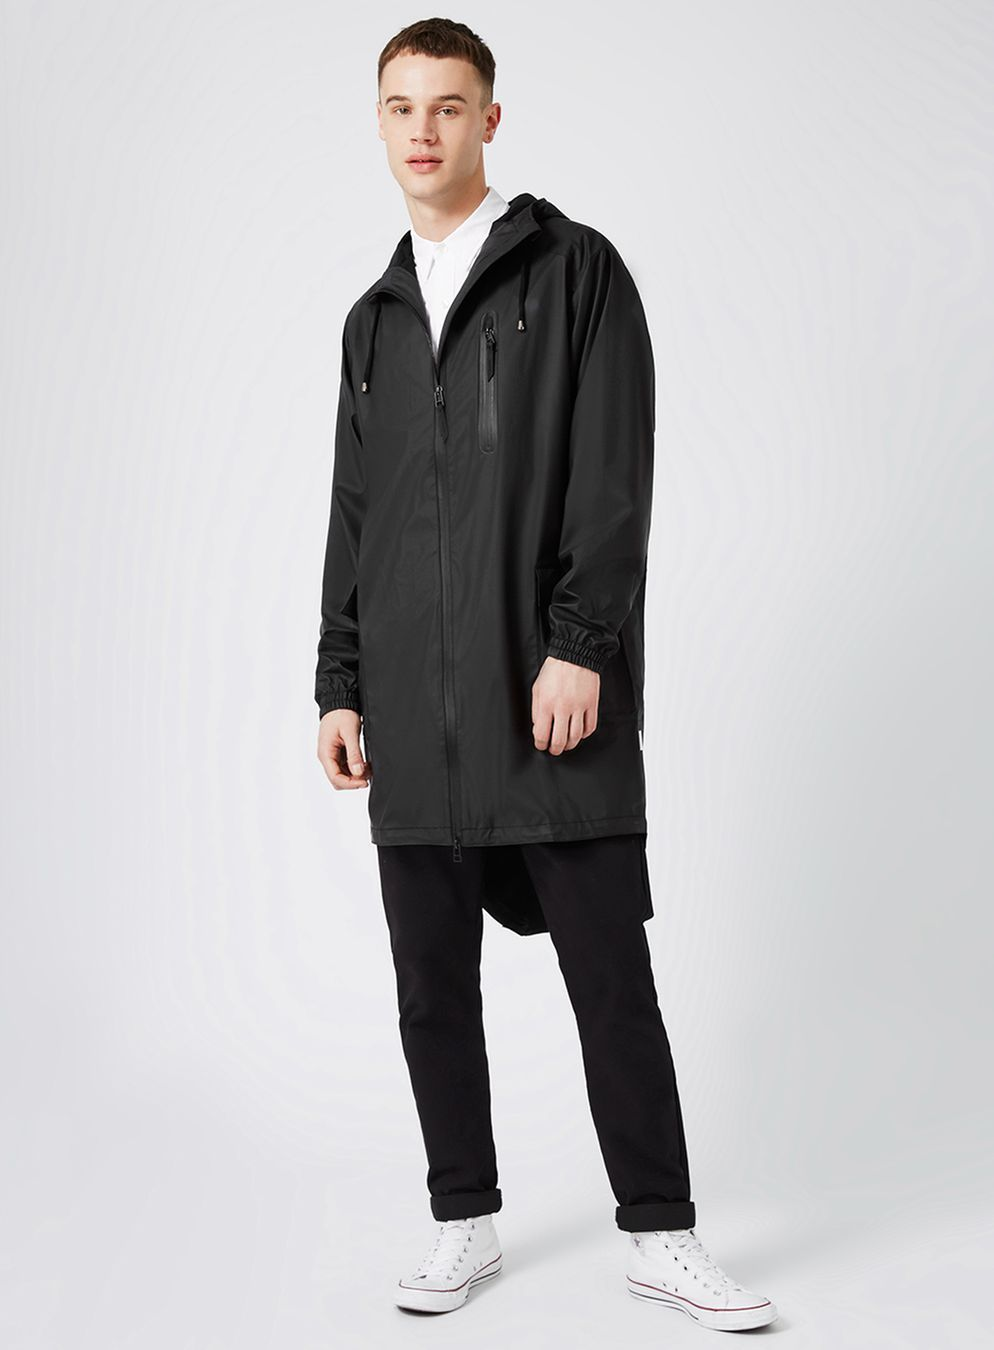 RAINS Black Long Parka Raincoat | Long parka, Raincoat and Black